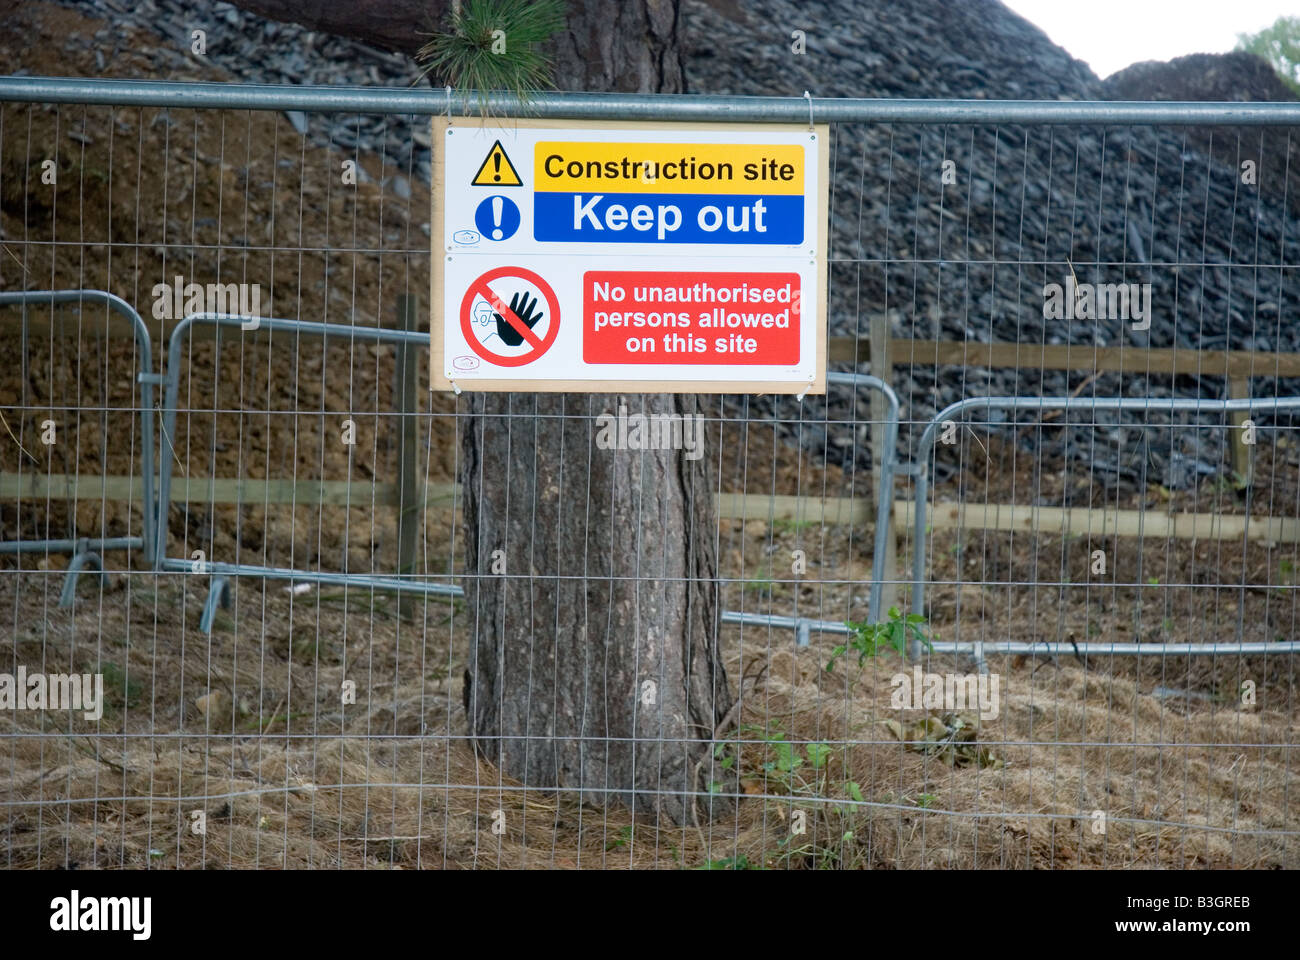 Construction site keep out sign - Stock Image